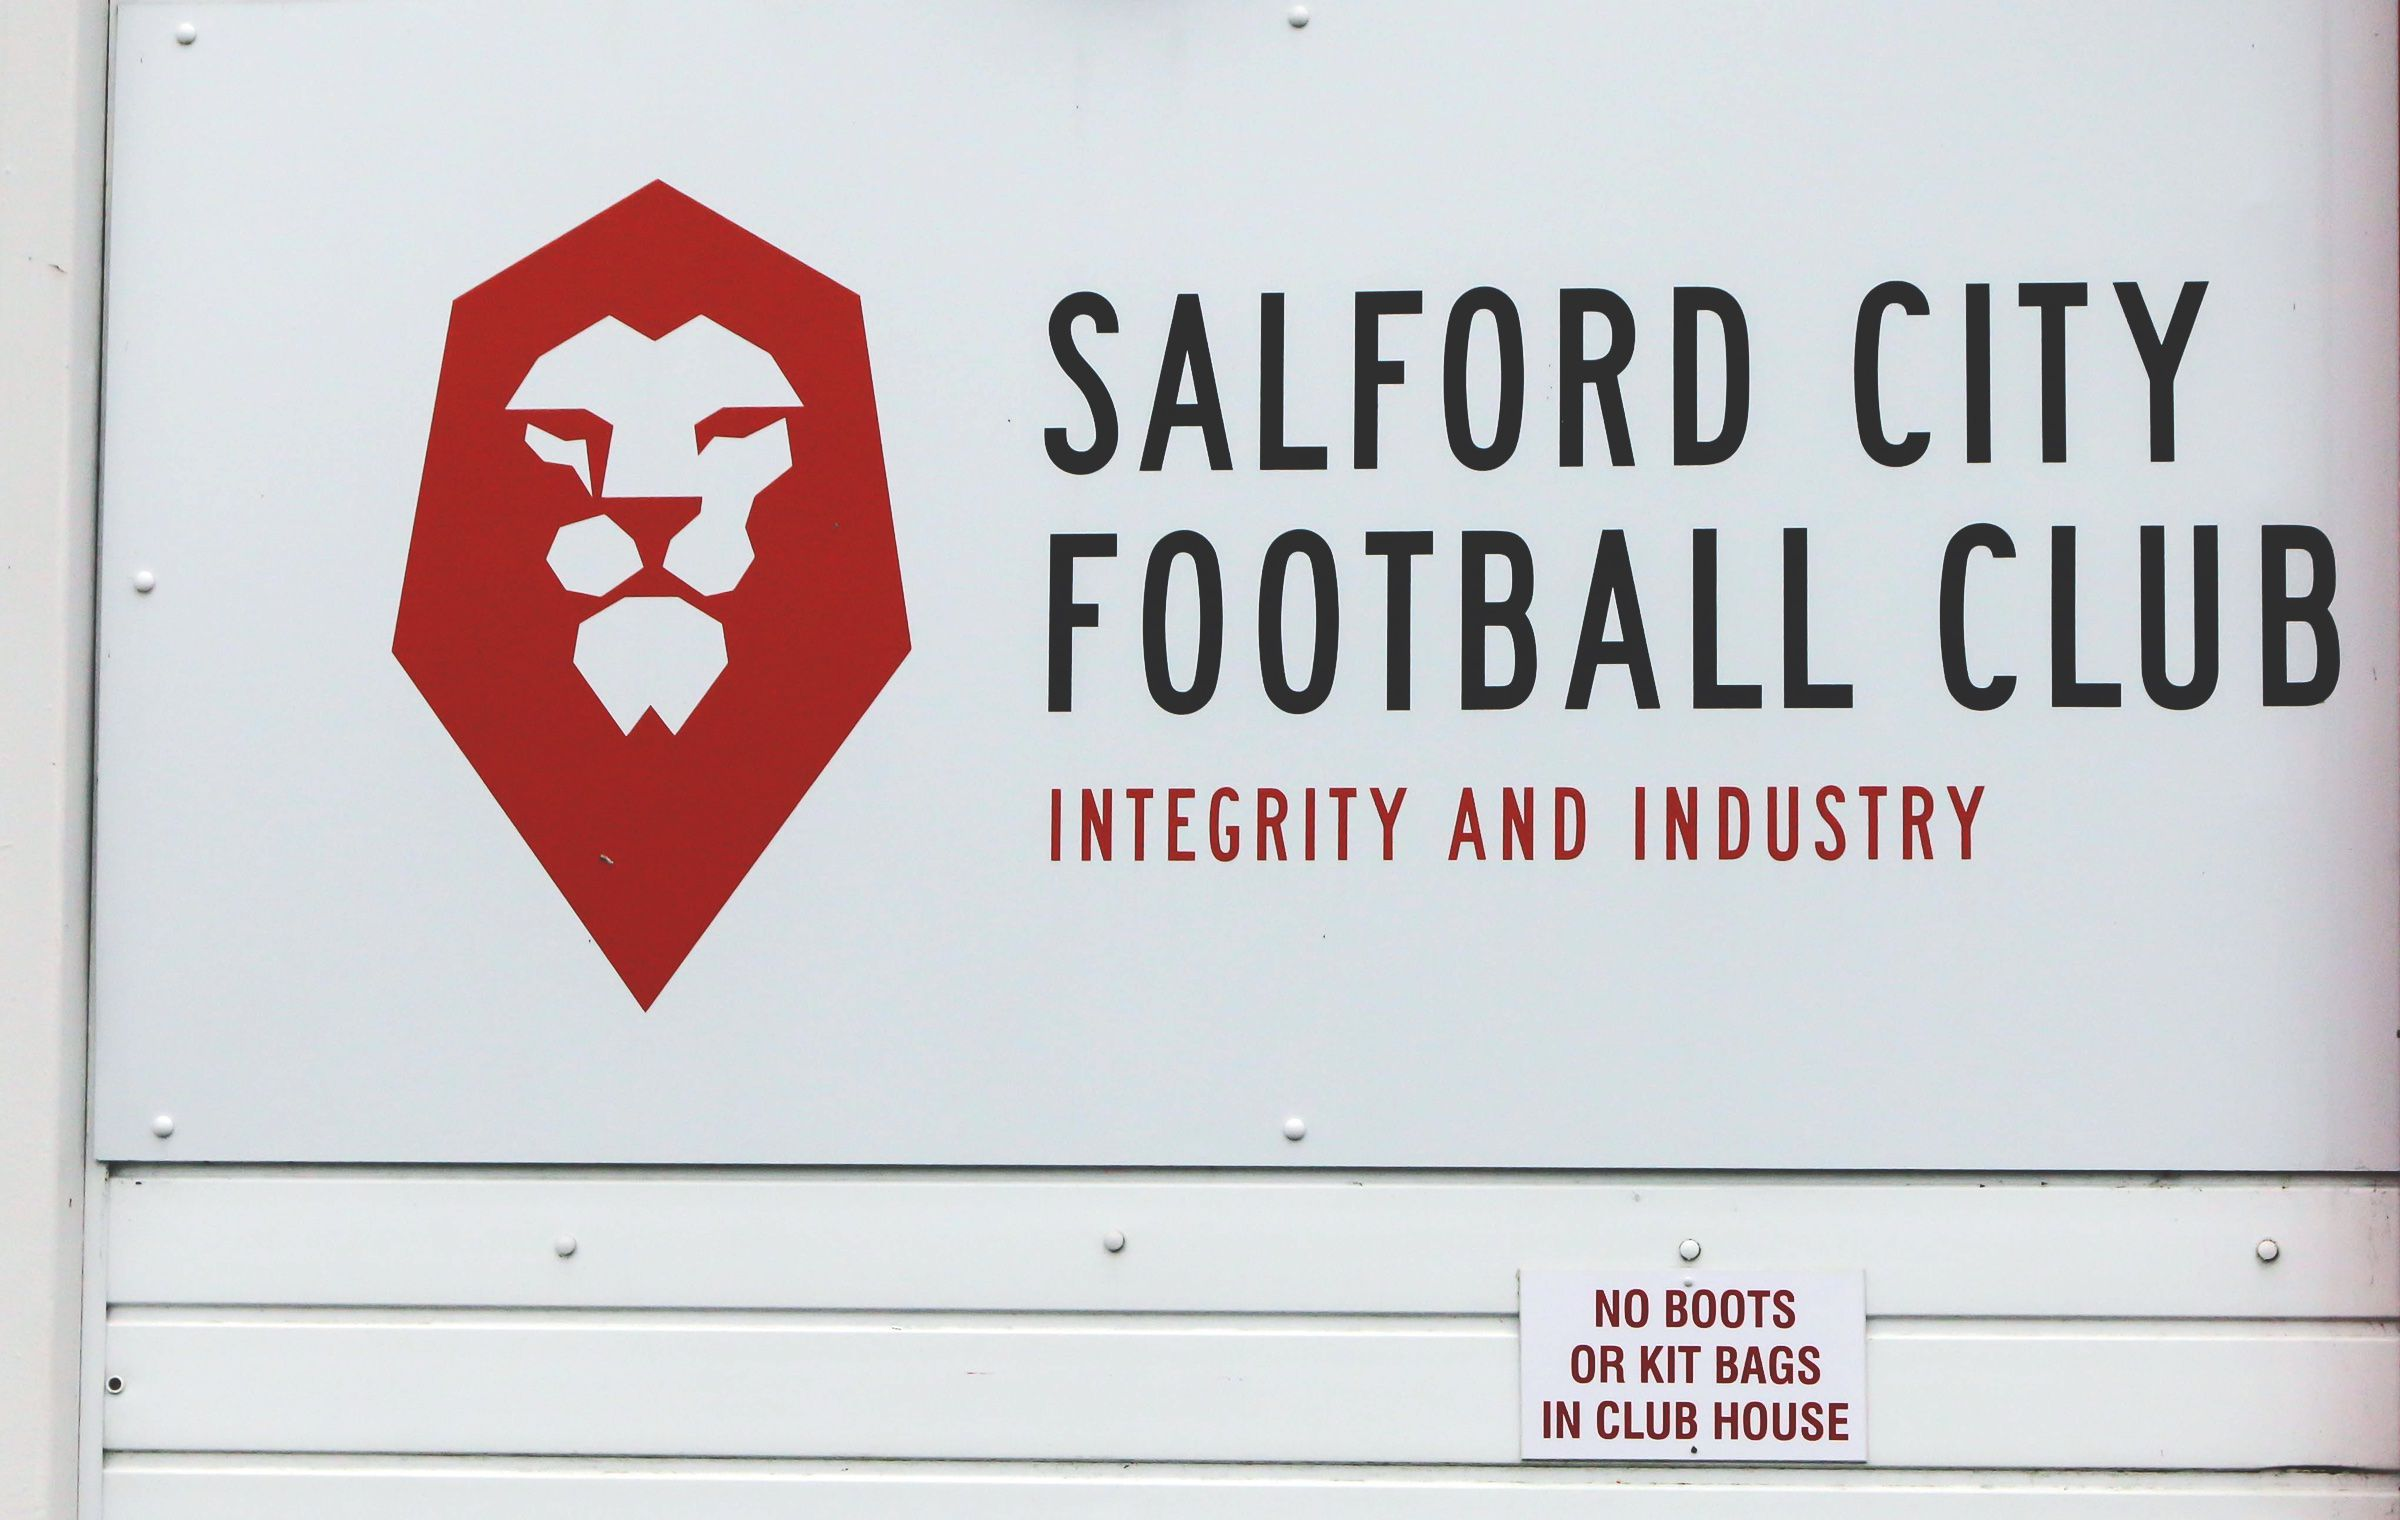 »Salford City 2 Colwyn Bay 2 25 Aug 2015-178.jpg« / James Boyes on flickr / CC BY 2.0